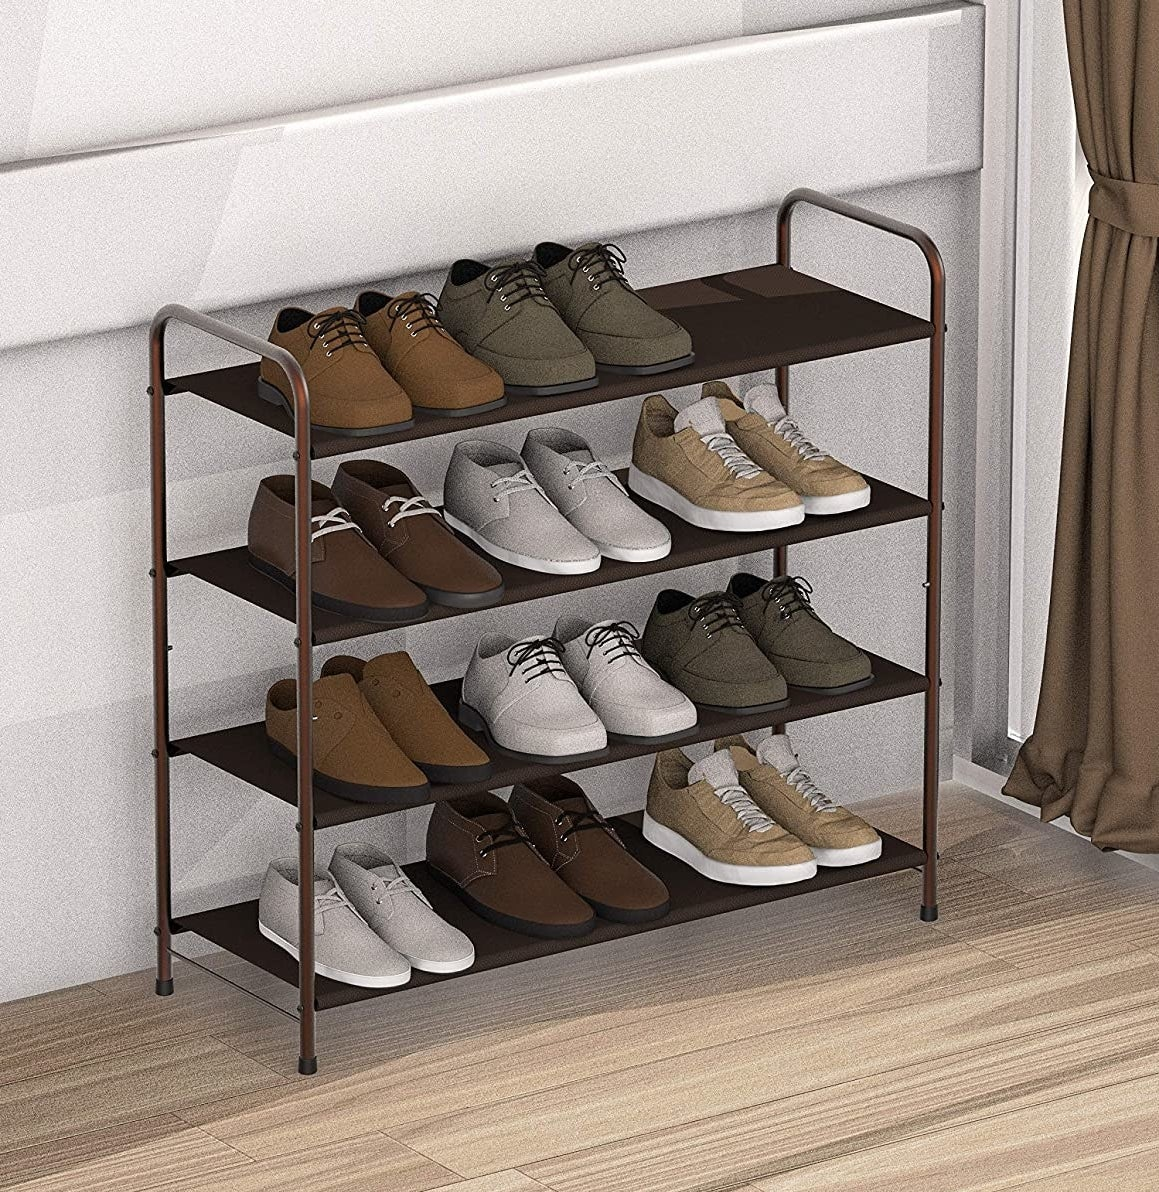 A four-tier shoe rack with eleven pairs of shoes on it